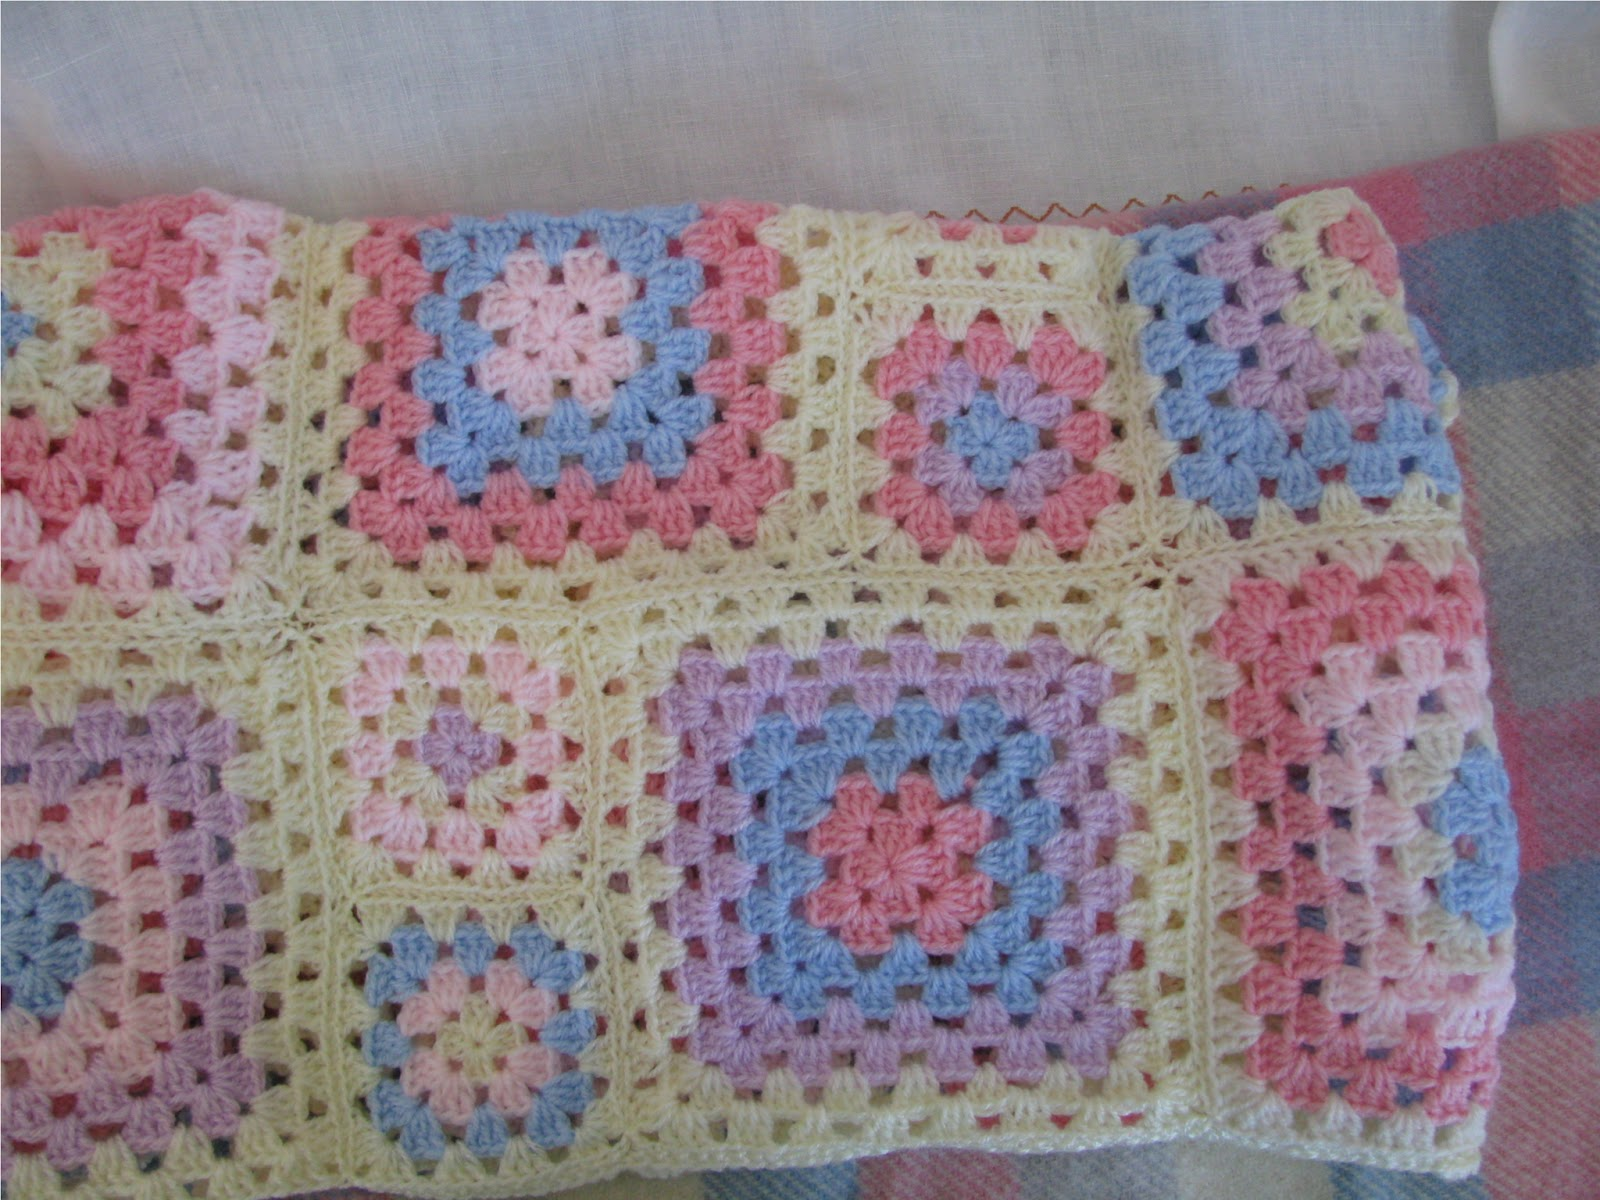 Crocheting A Baby Quilt : Shortbread & Ginger: Crochet Baby Blanket